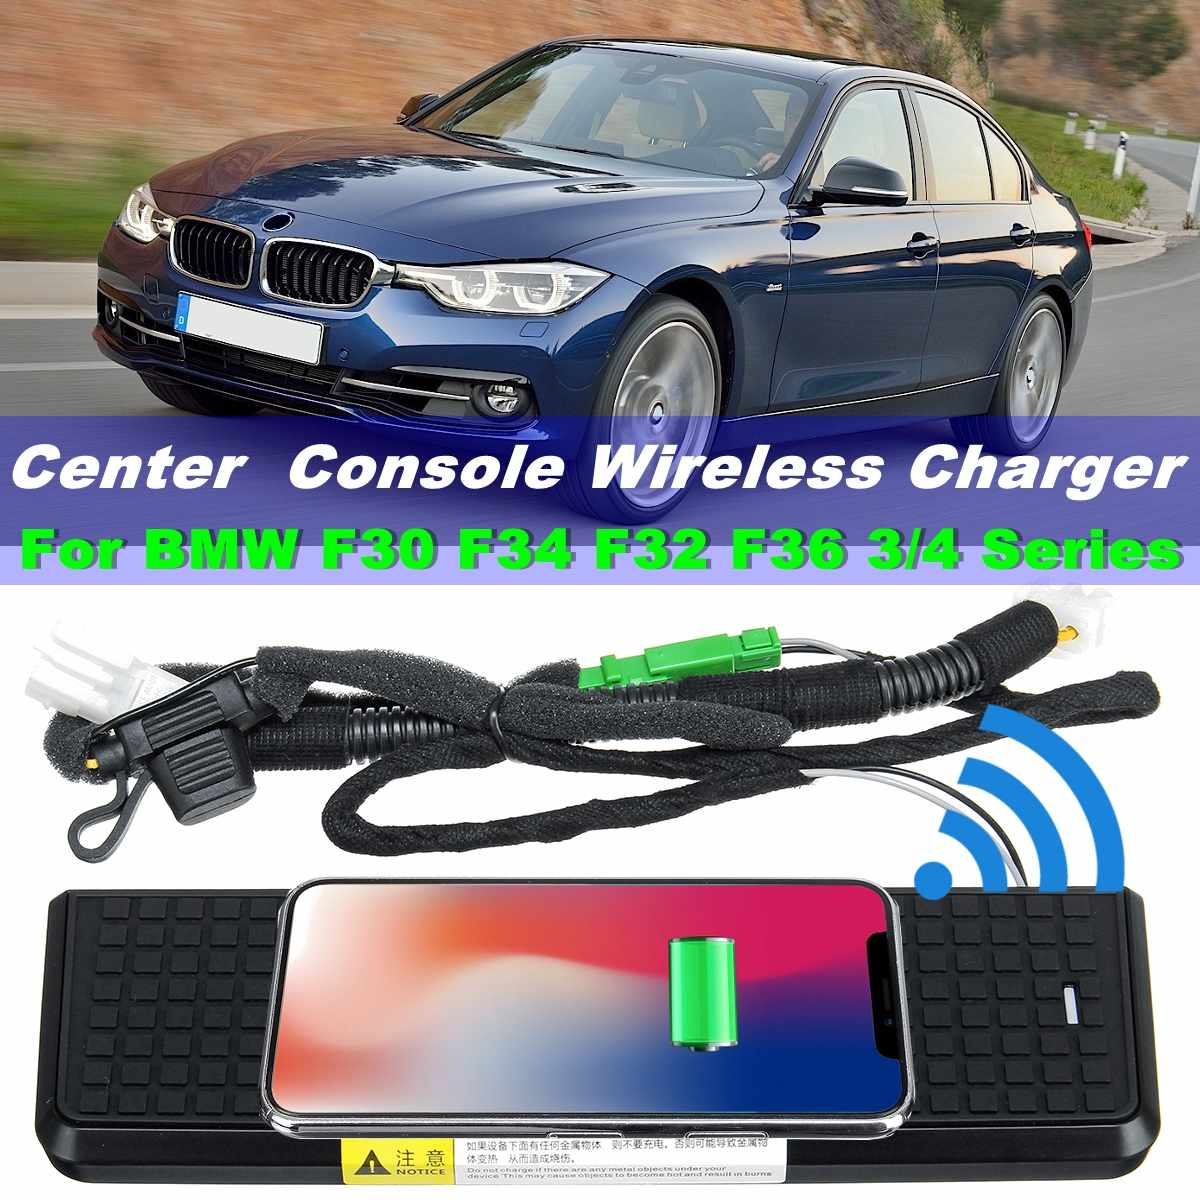 QI Wireless Charging Phone Charger Center Console For BMW F30 F31 F34 F32 F36 3 4 Series 2013-2018 LHD wireless charging toolQI Wireless Charging Phone Charger Center Console For BMW F30 F31 F34 F32 F36 3 4 Series 2013-2018 LHD wireless charging tool